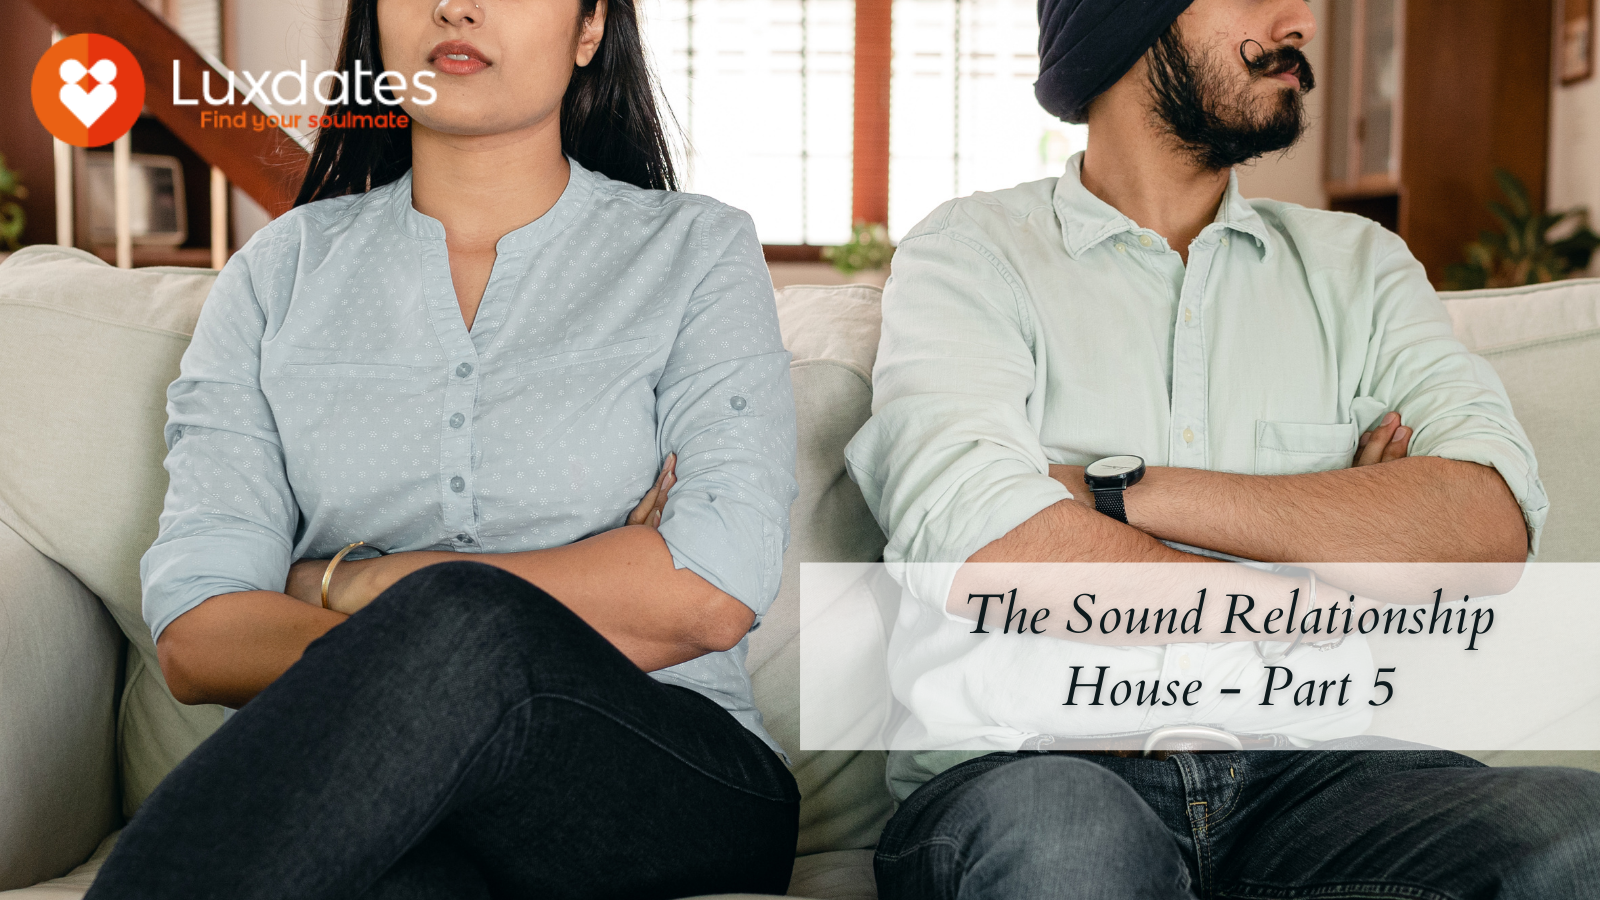 The Sound Relationship House - Part 5